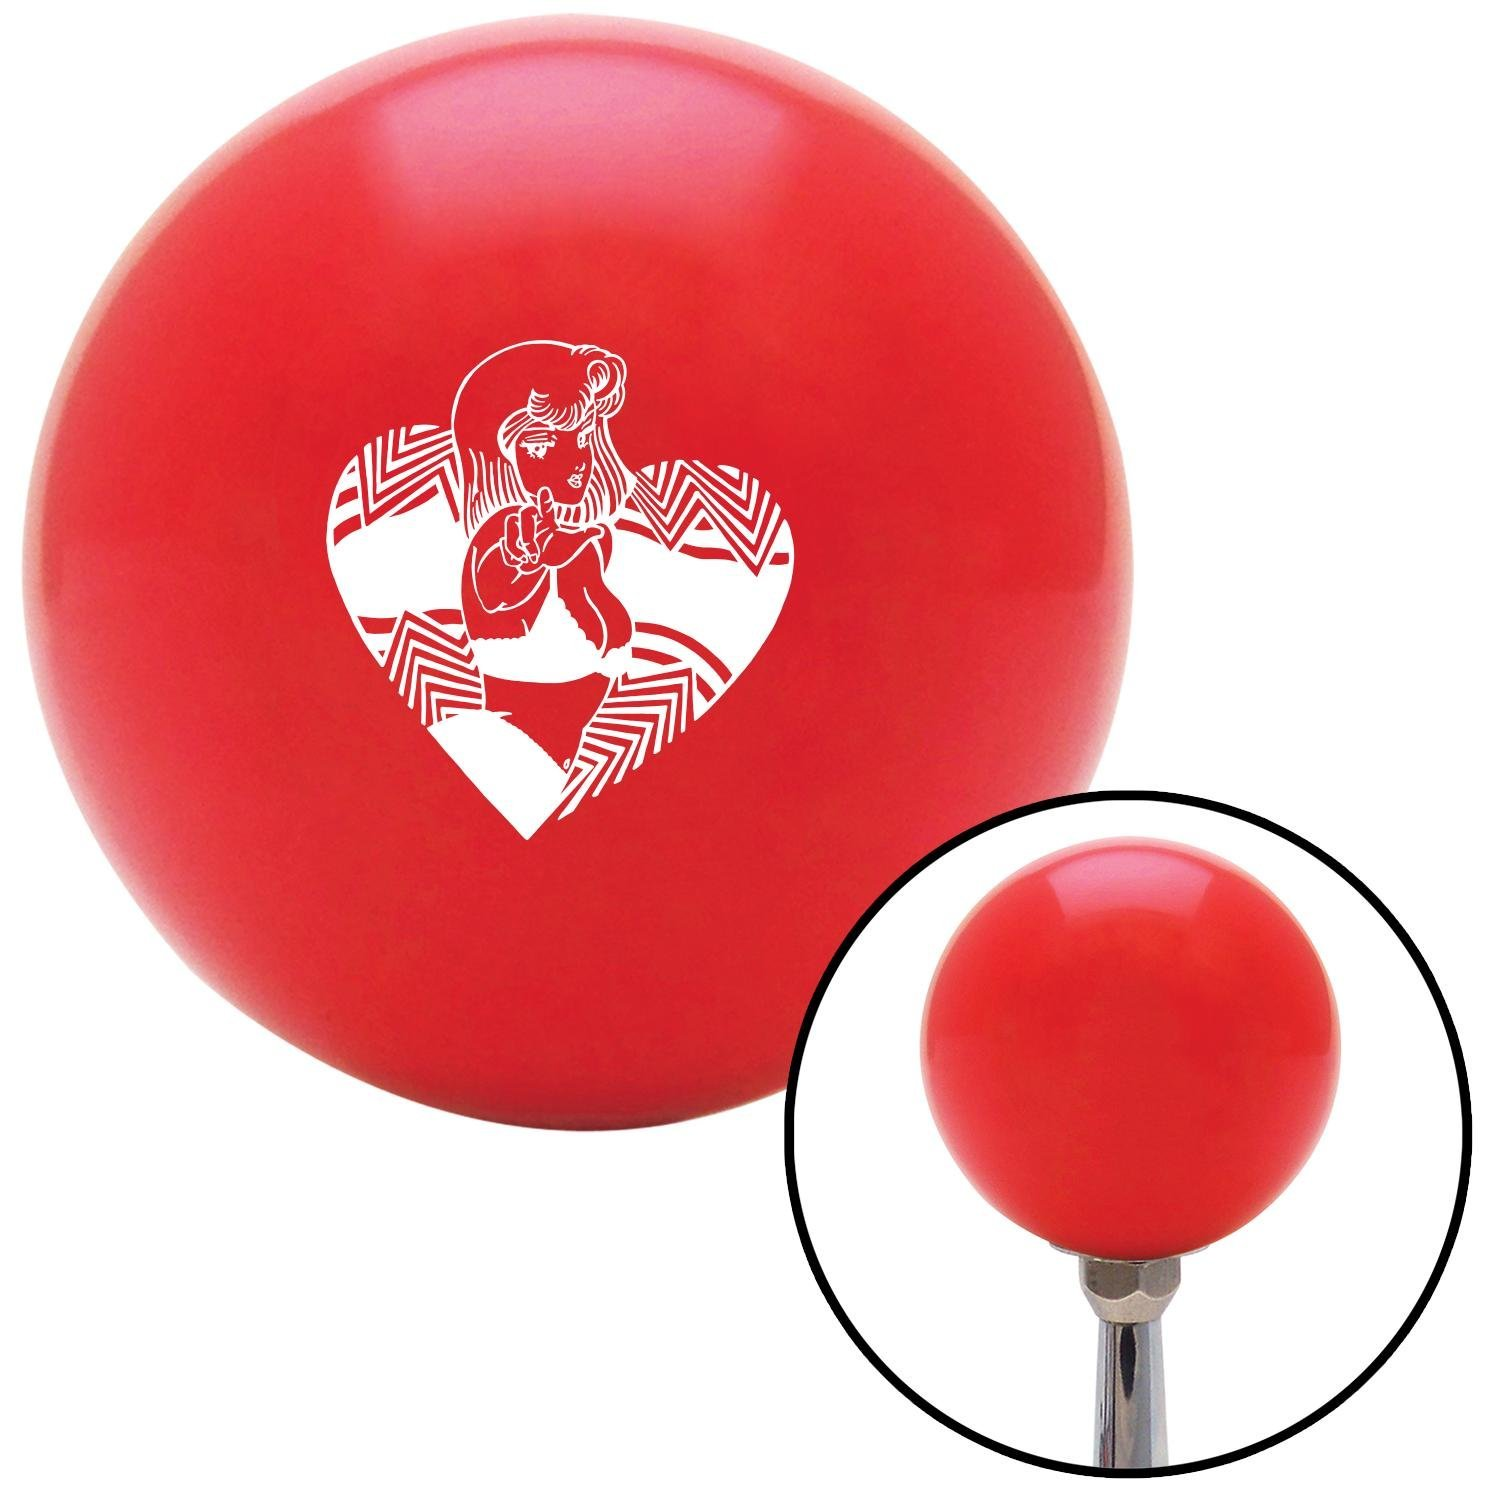 White Anime Girl in Heart American Shifter 98929 Red Shift Knob with M16 x 1.5 Insert